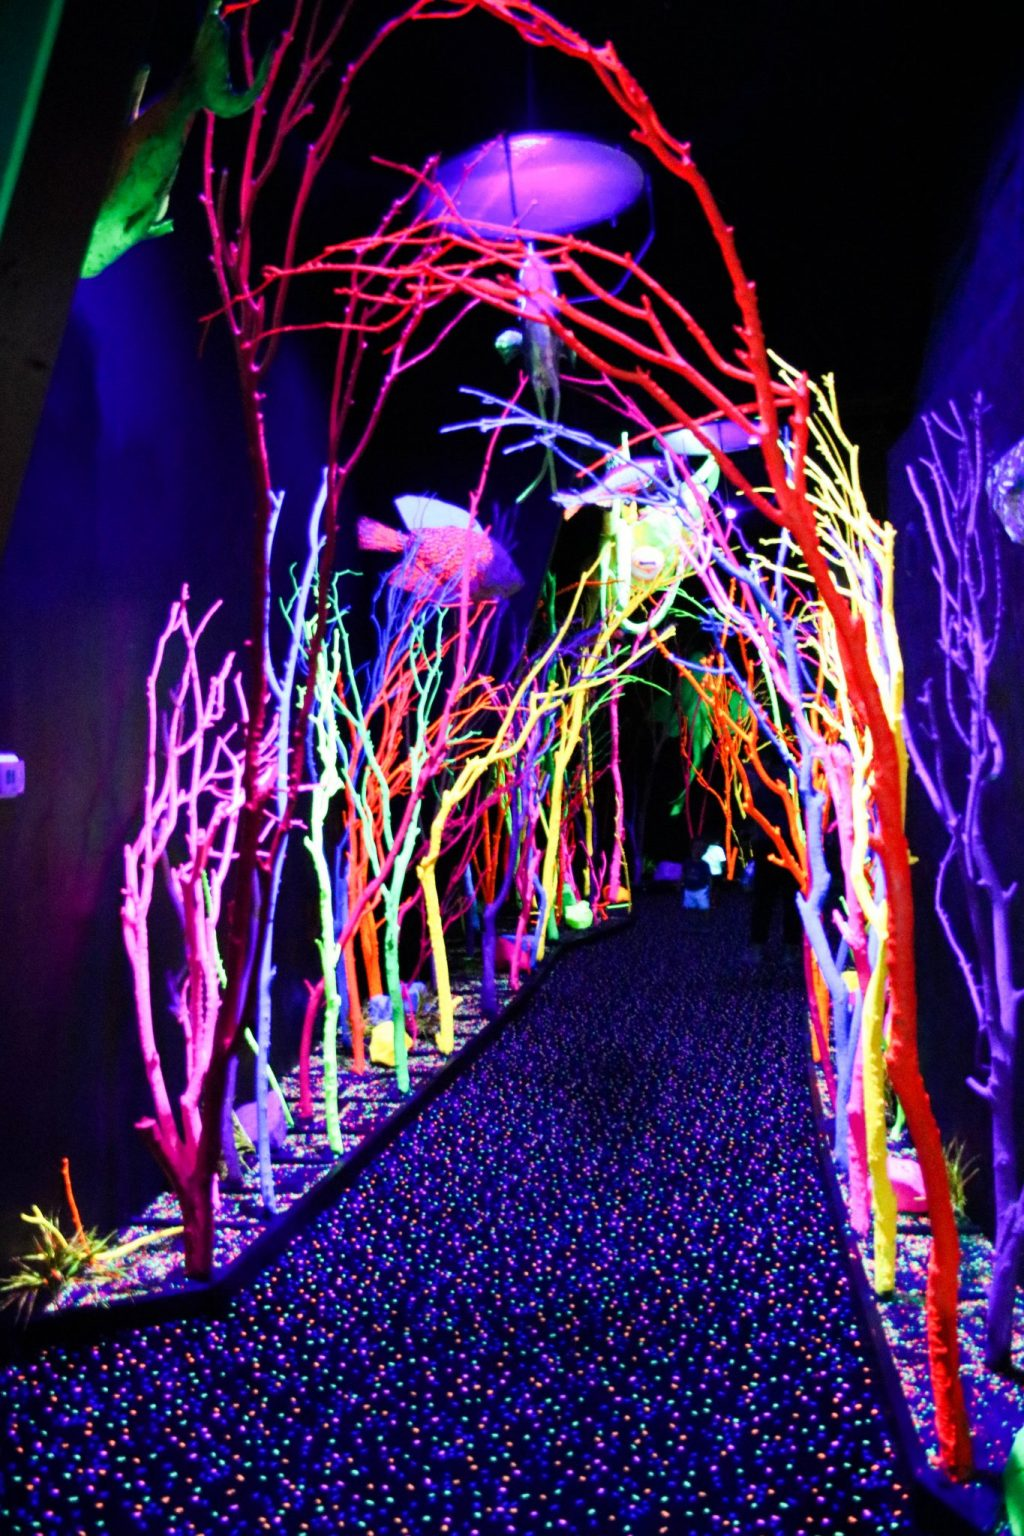 Meow Wolf: An Immersive Experience In Santa Fe